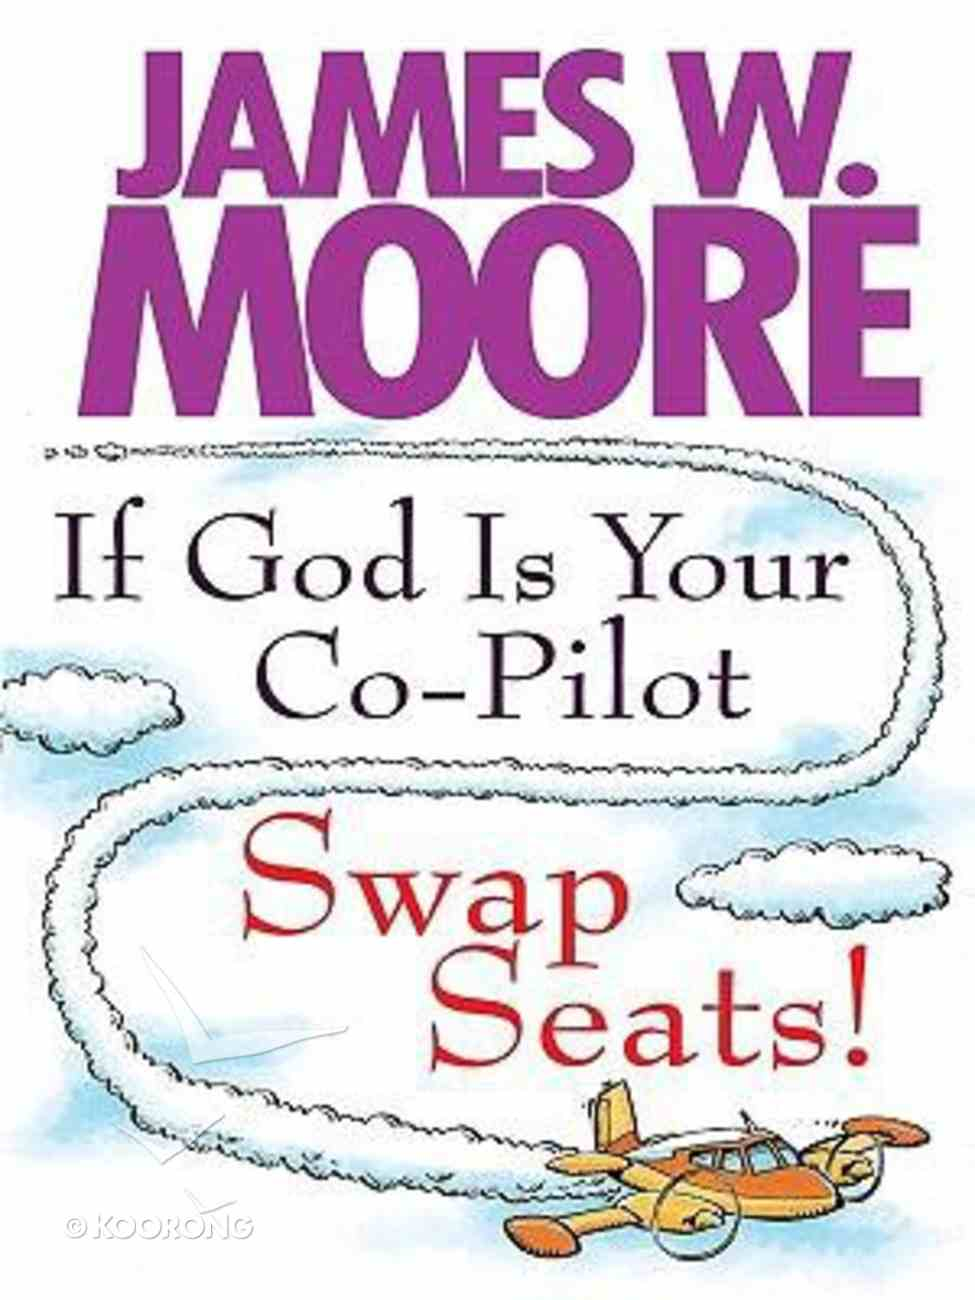 If God is Your Co-Pilot, Swap Seats (Large Print) Paperback